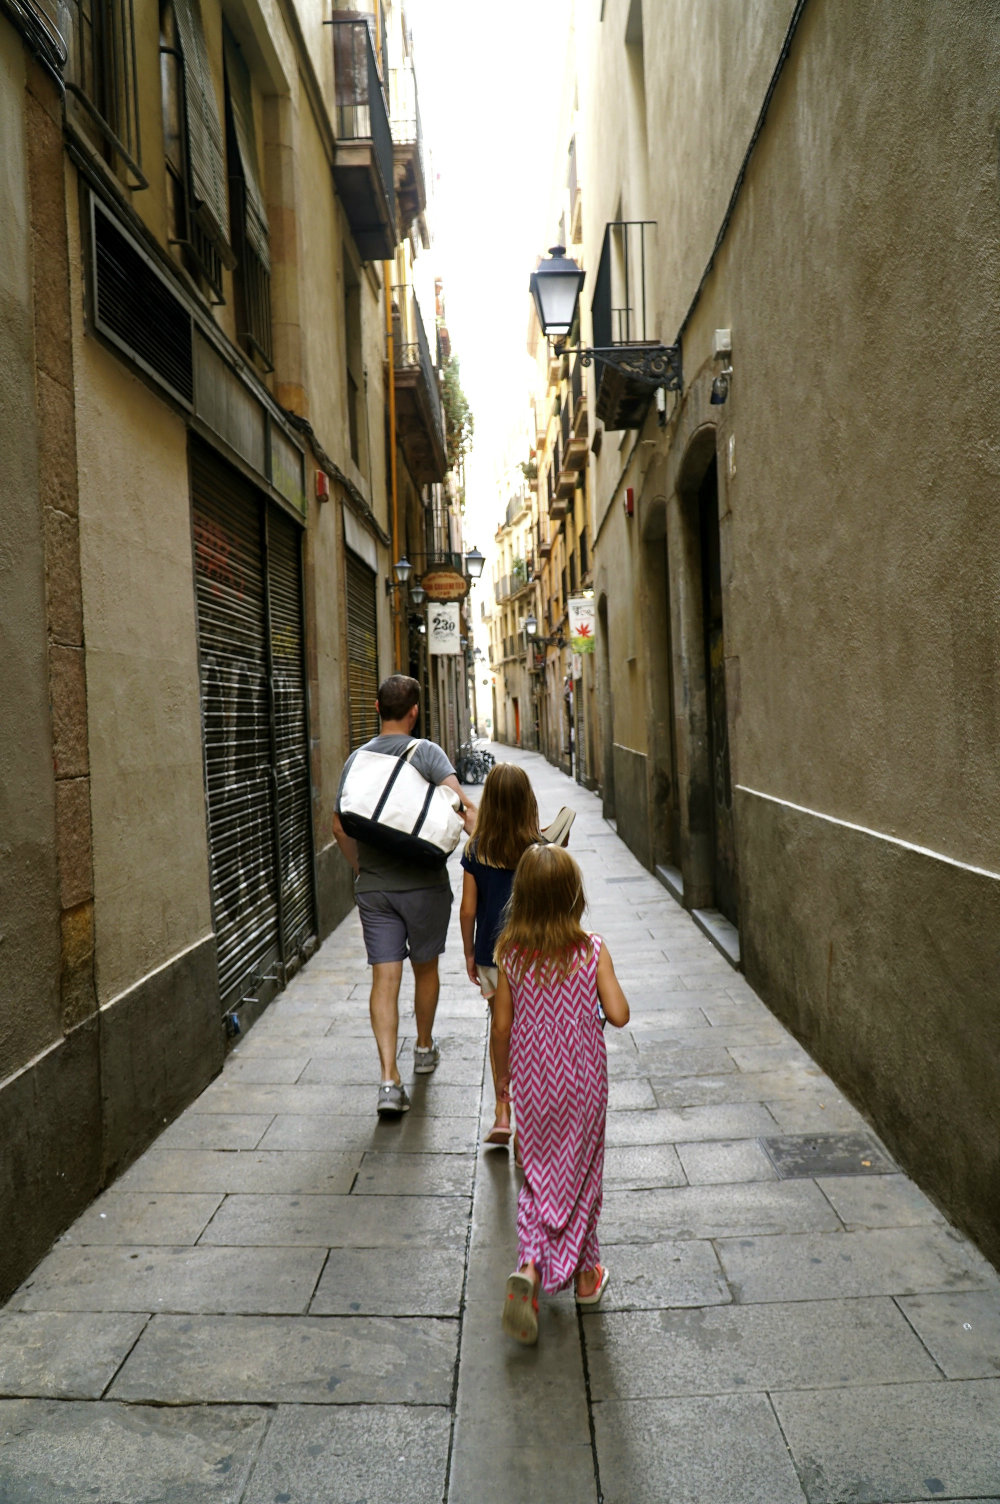 Walking the narrow streets of the Gothic Quarter in Barcelona.